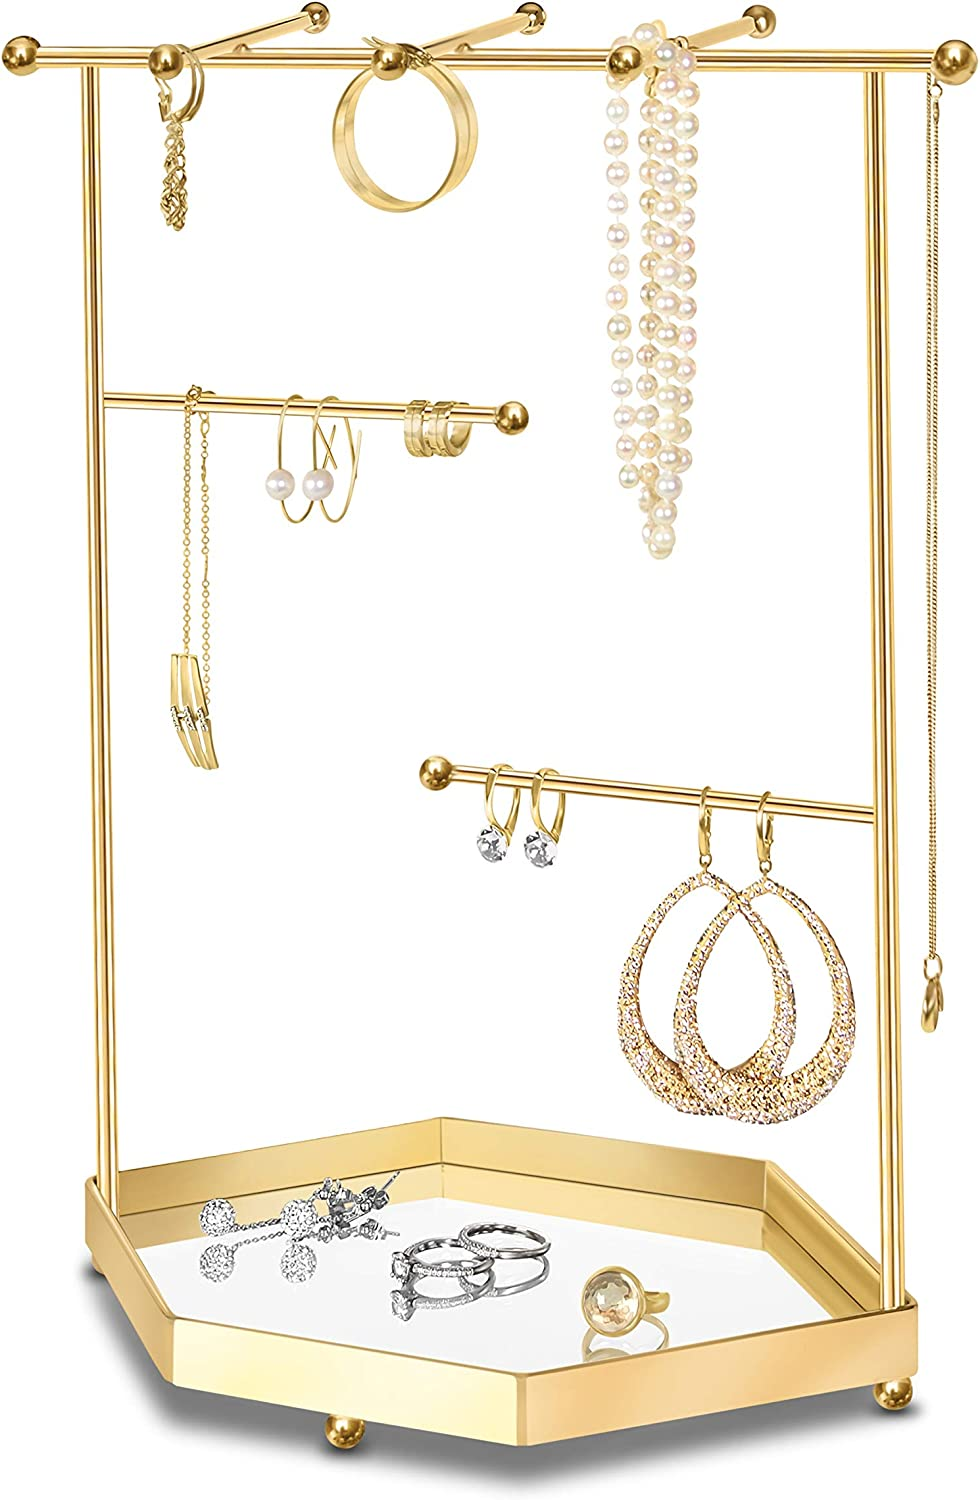 LeniLena Jewelry Organizer with Mirror Tray Base, Bracelet & Necklace Hanger, Ring Tree, Earrings Holder. Stand Display in Metal, Dimensions 9''x 4.8''x 11.5'' (Gold)